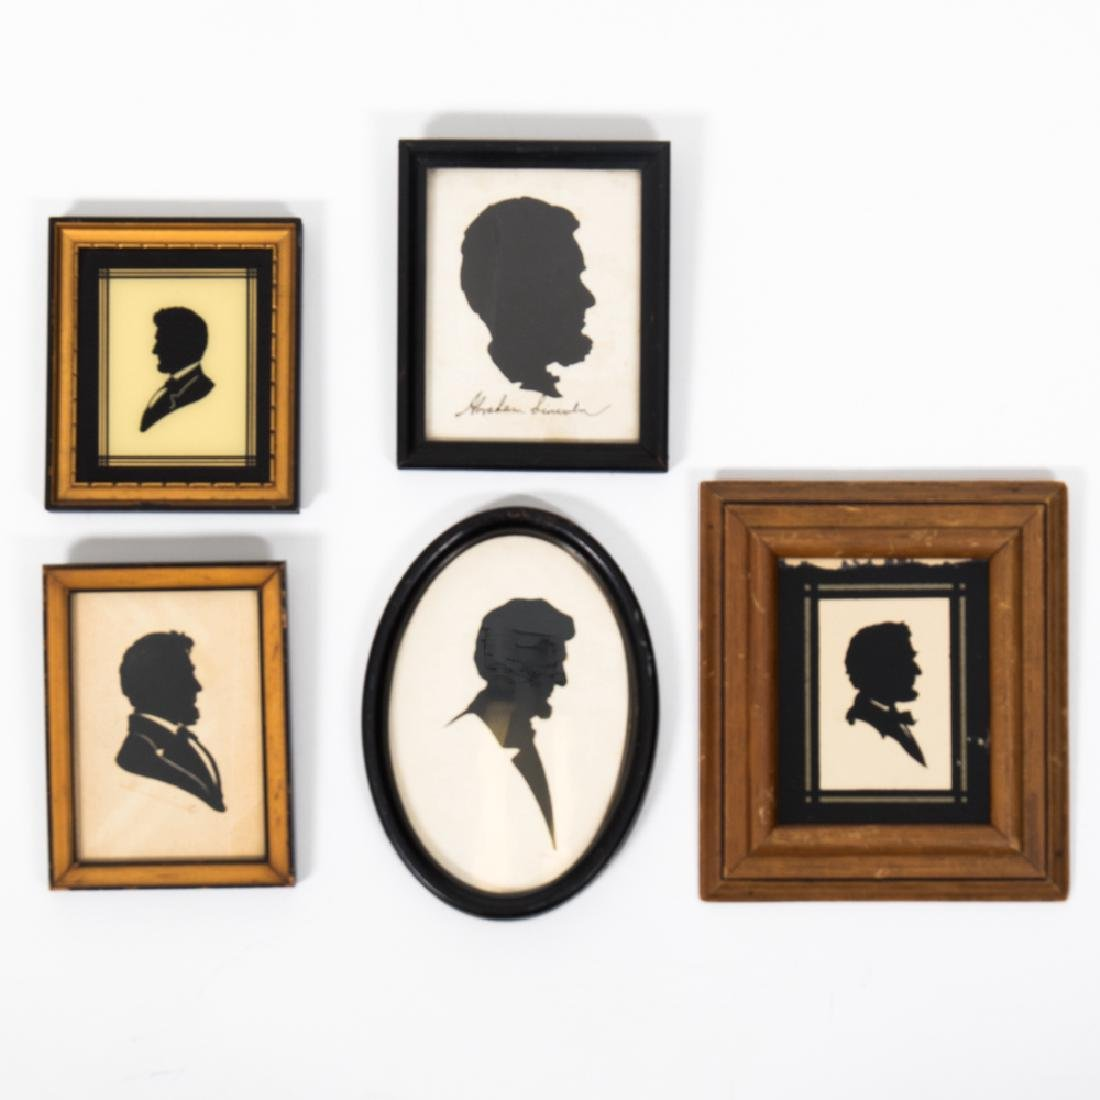 A Collection of Five Cut Paper and Reverse Painted